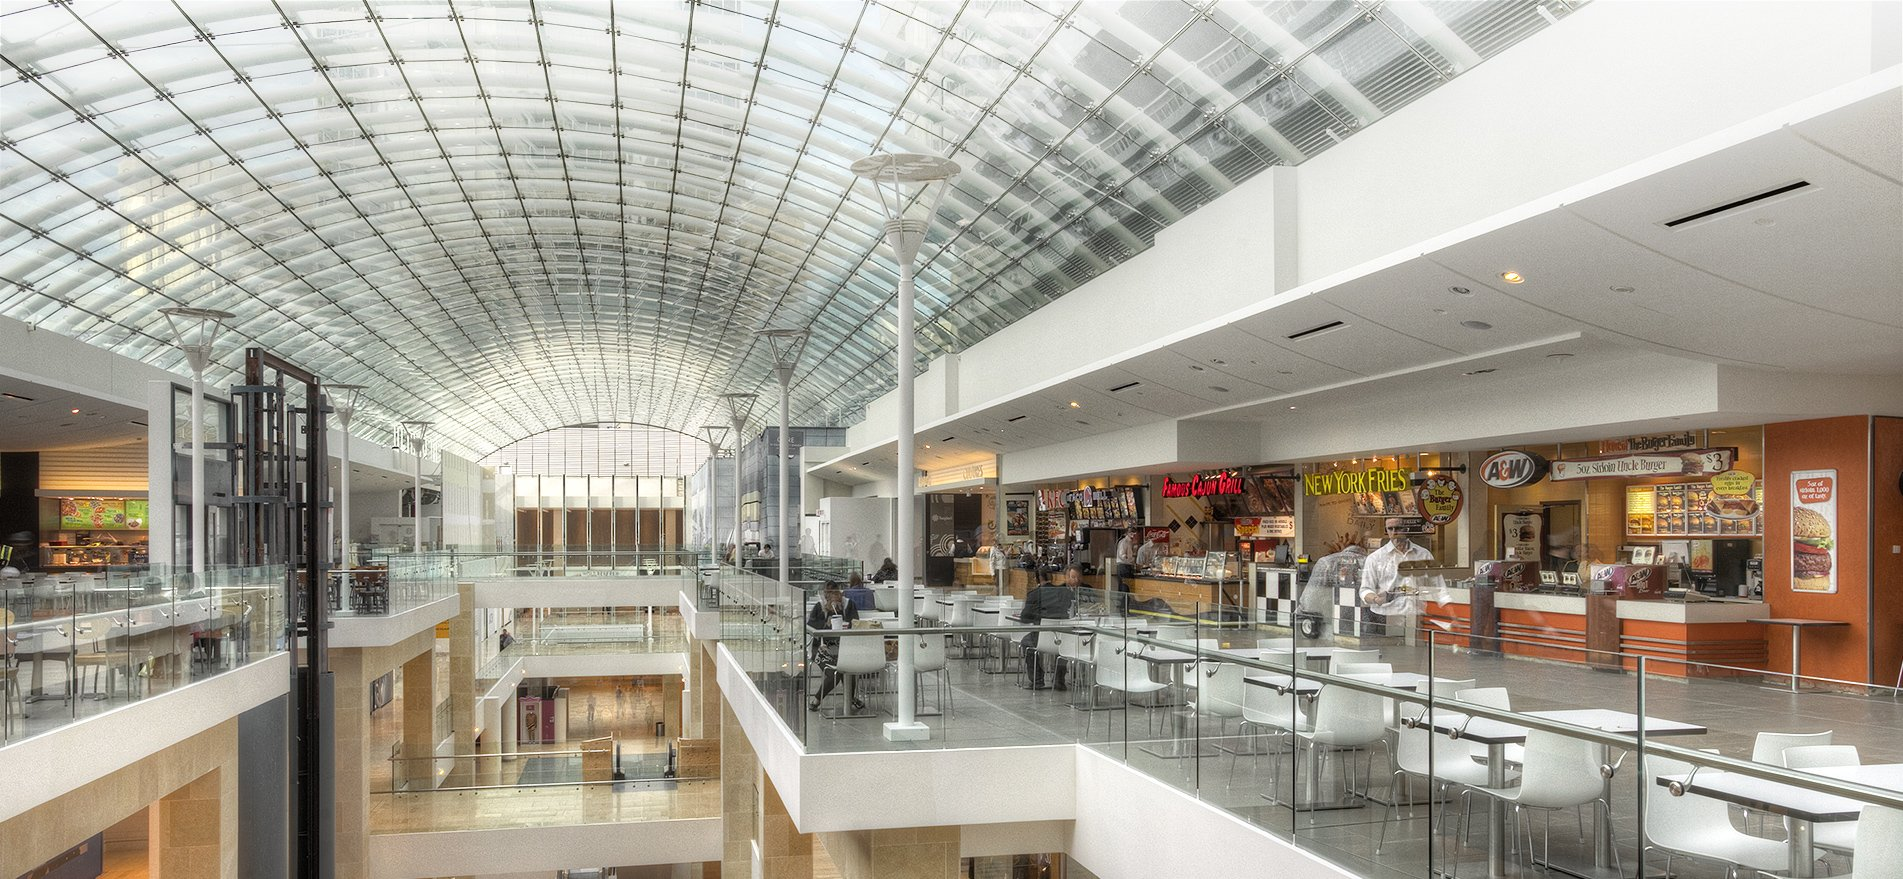 Sunco Drywall Ltd | Shopping Mall Project